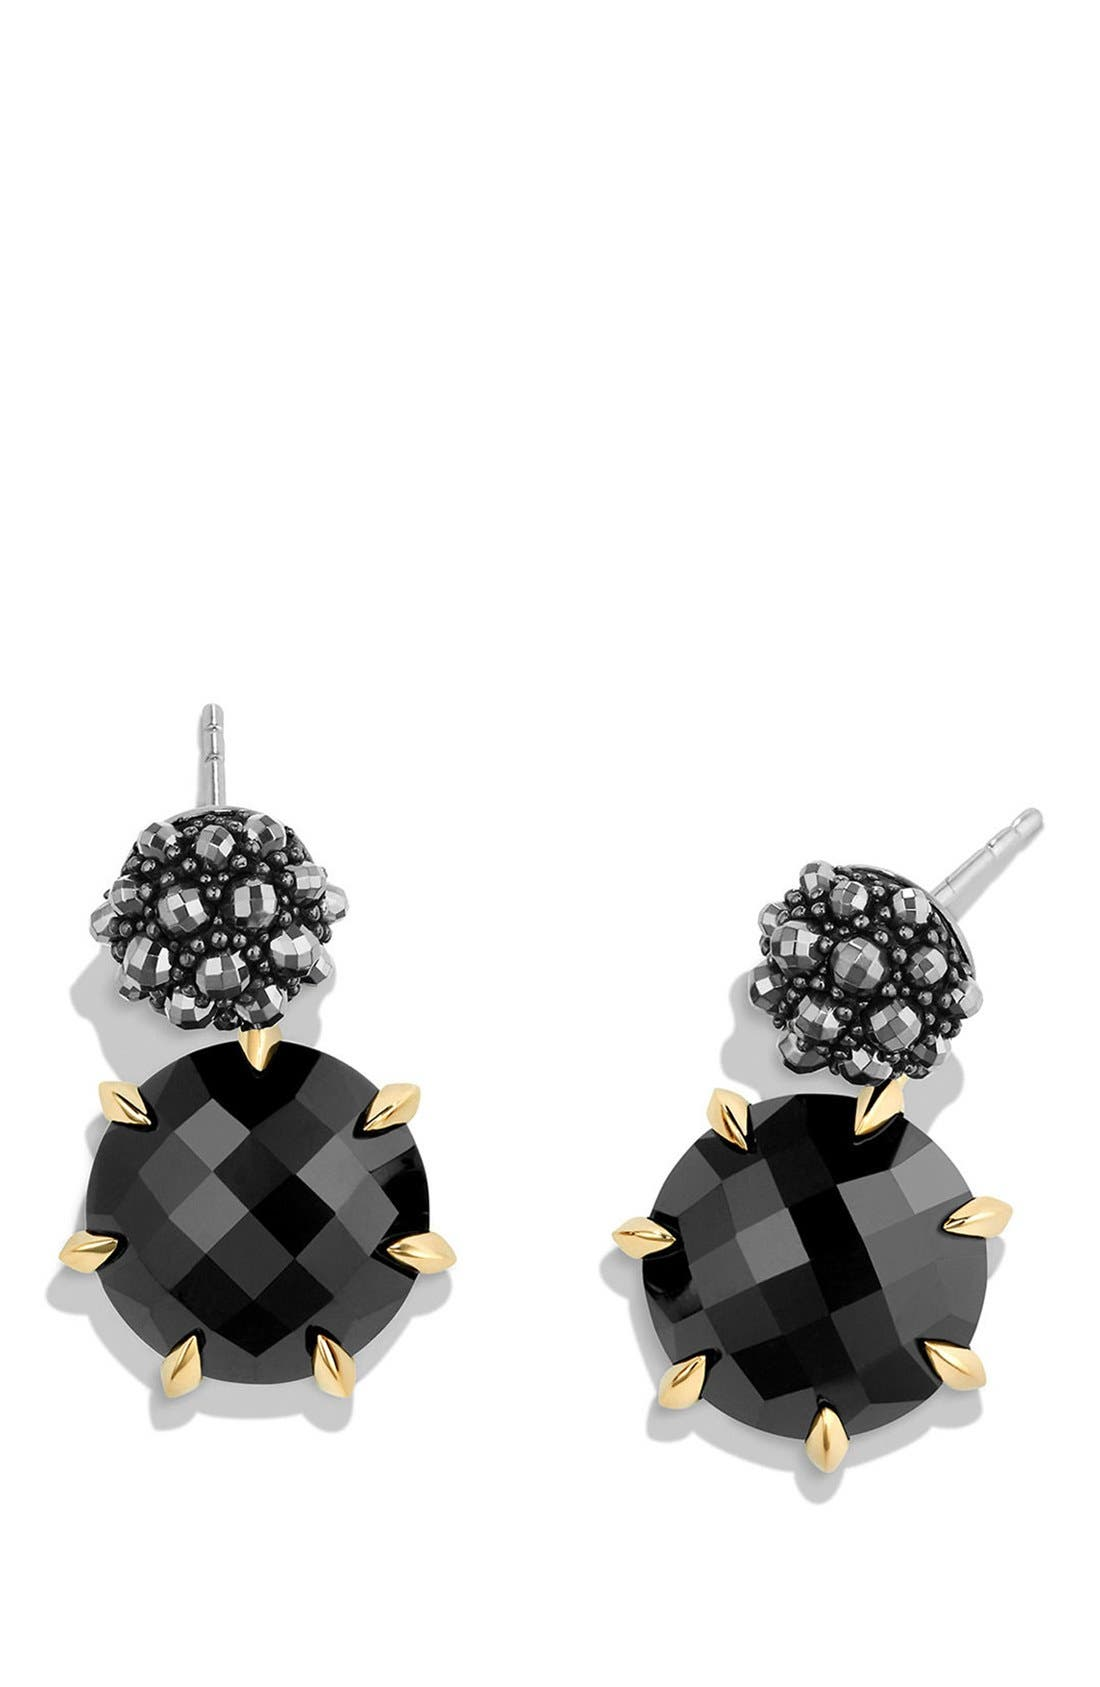 Osetra Drop Earrings with 18K Gold,                             Alternate thumbnail 2, color,                             Black Onyx/ Hematine